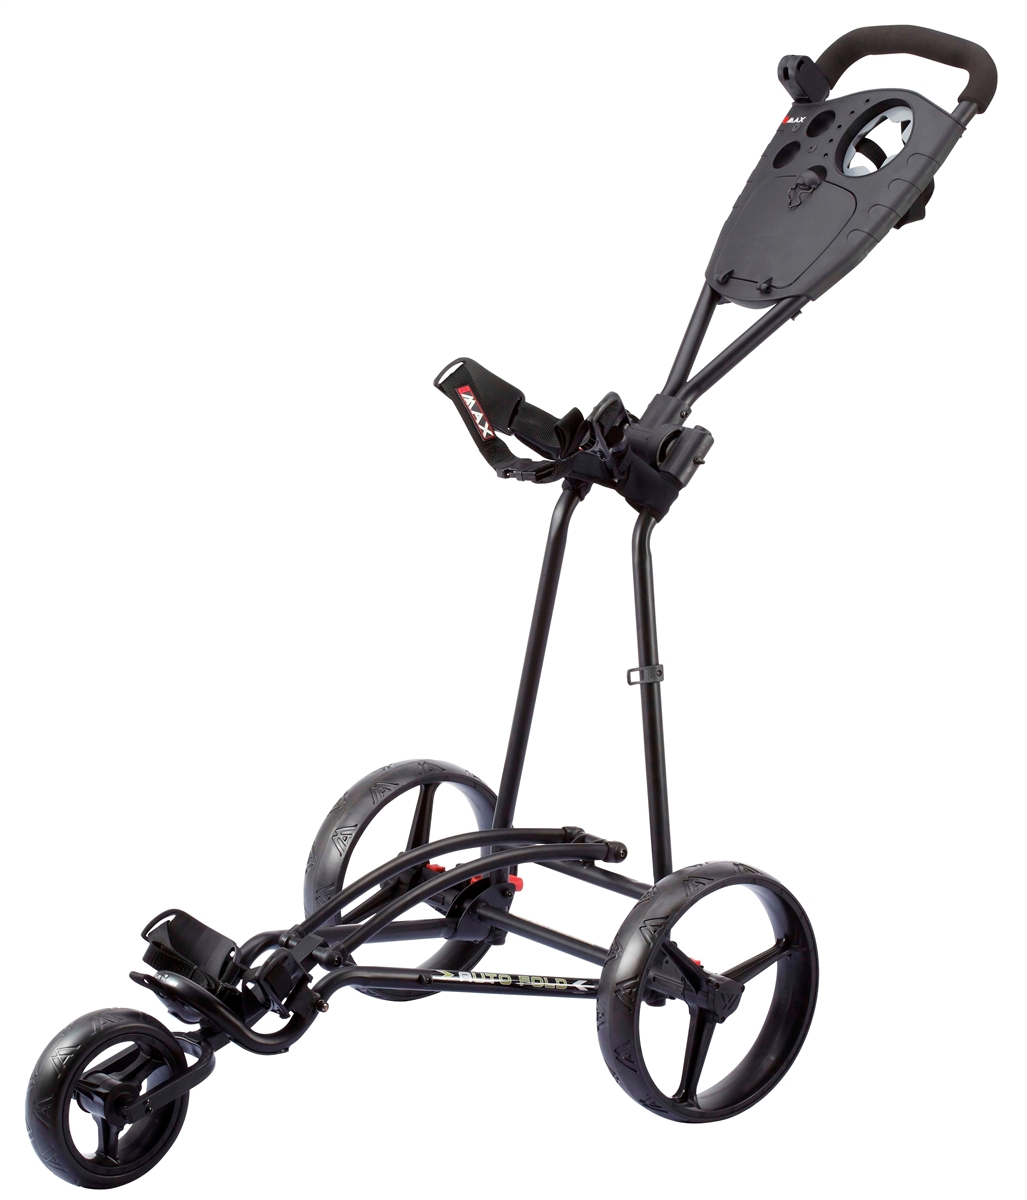 Big Max Autofold Golf Cart Golf Push Cart Golf Trolley